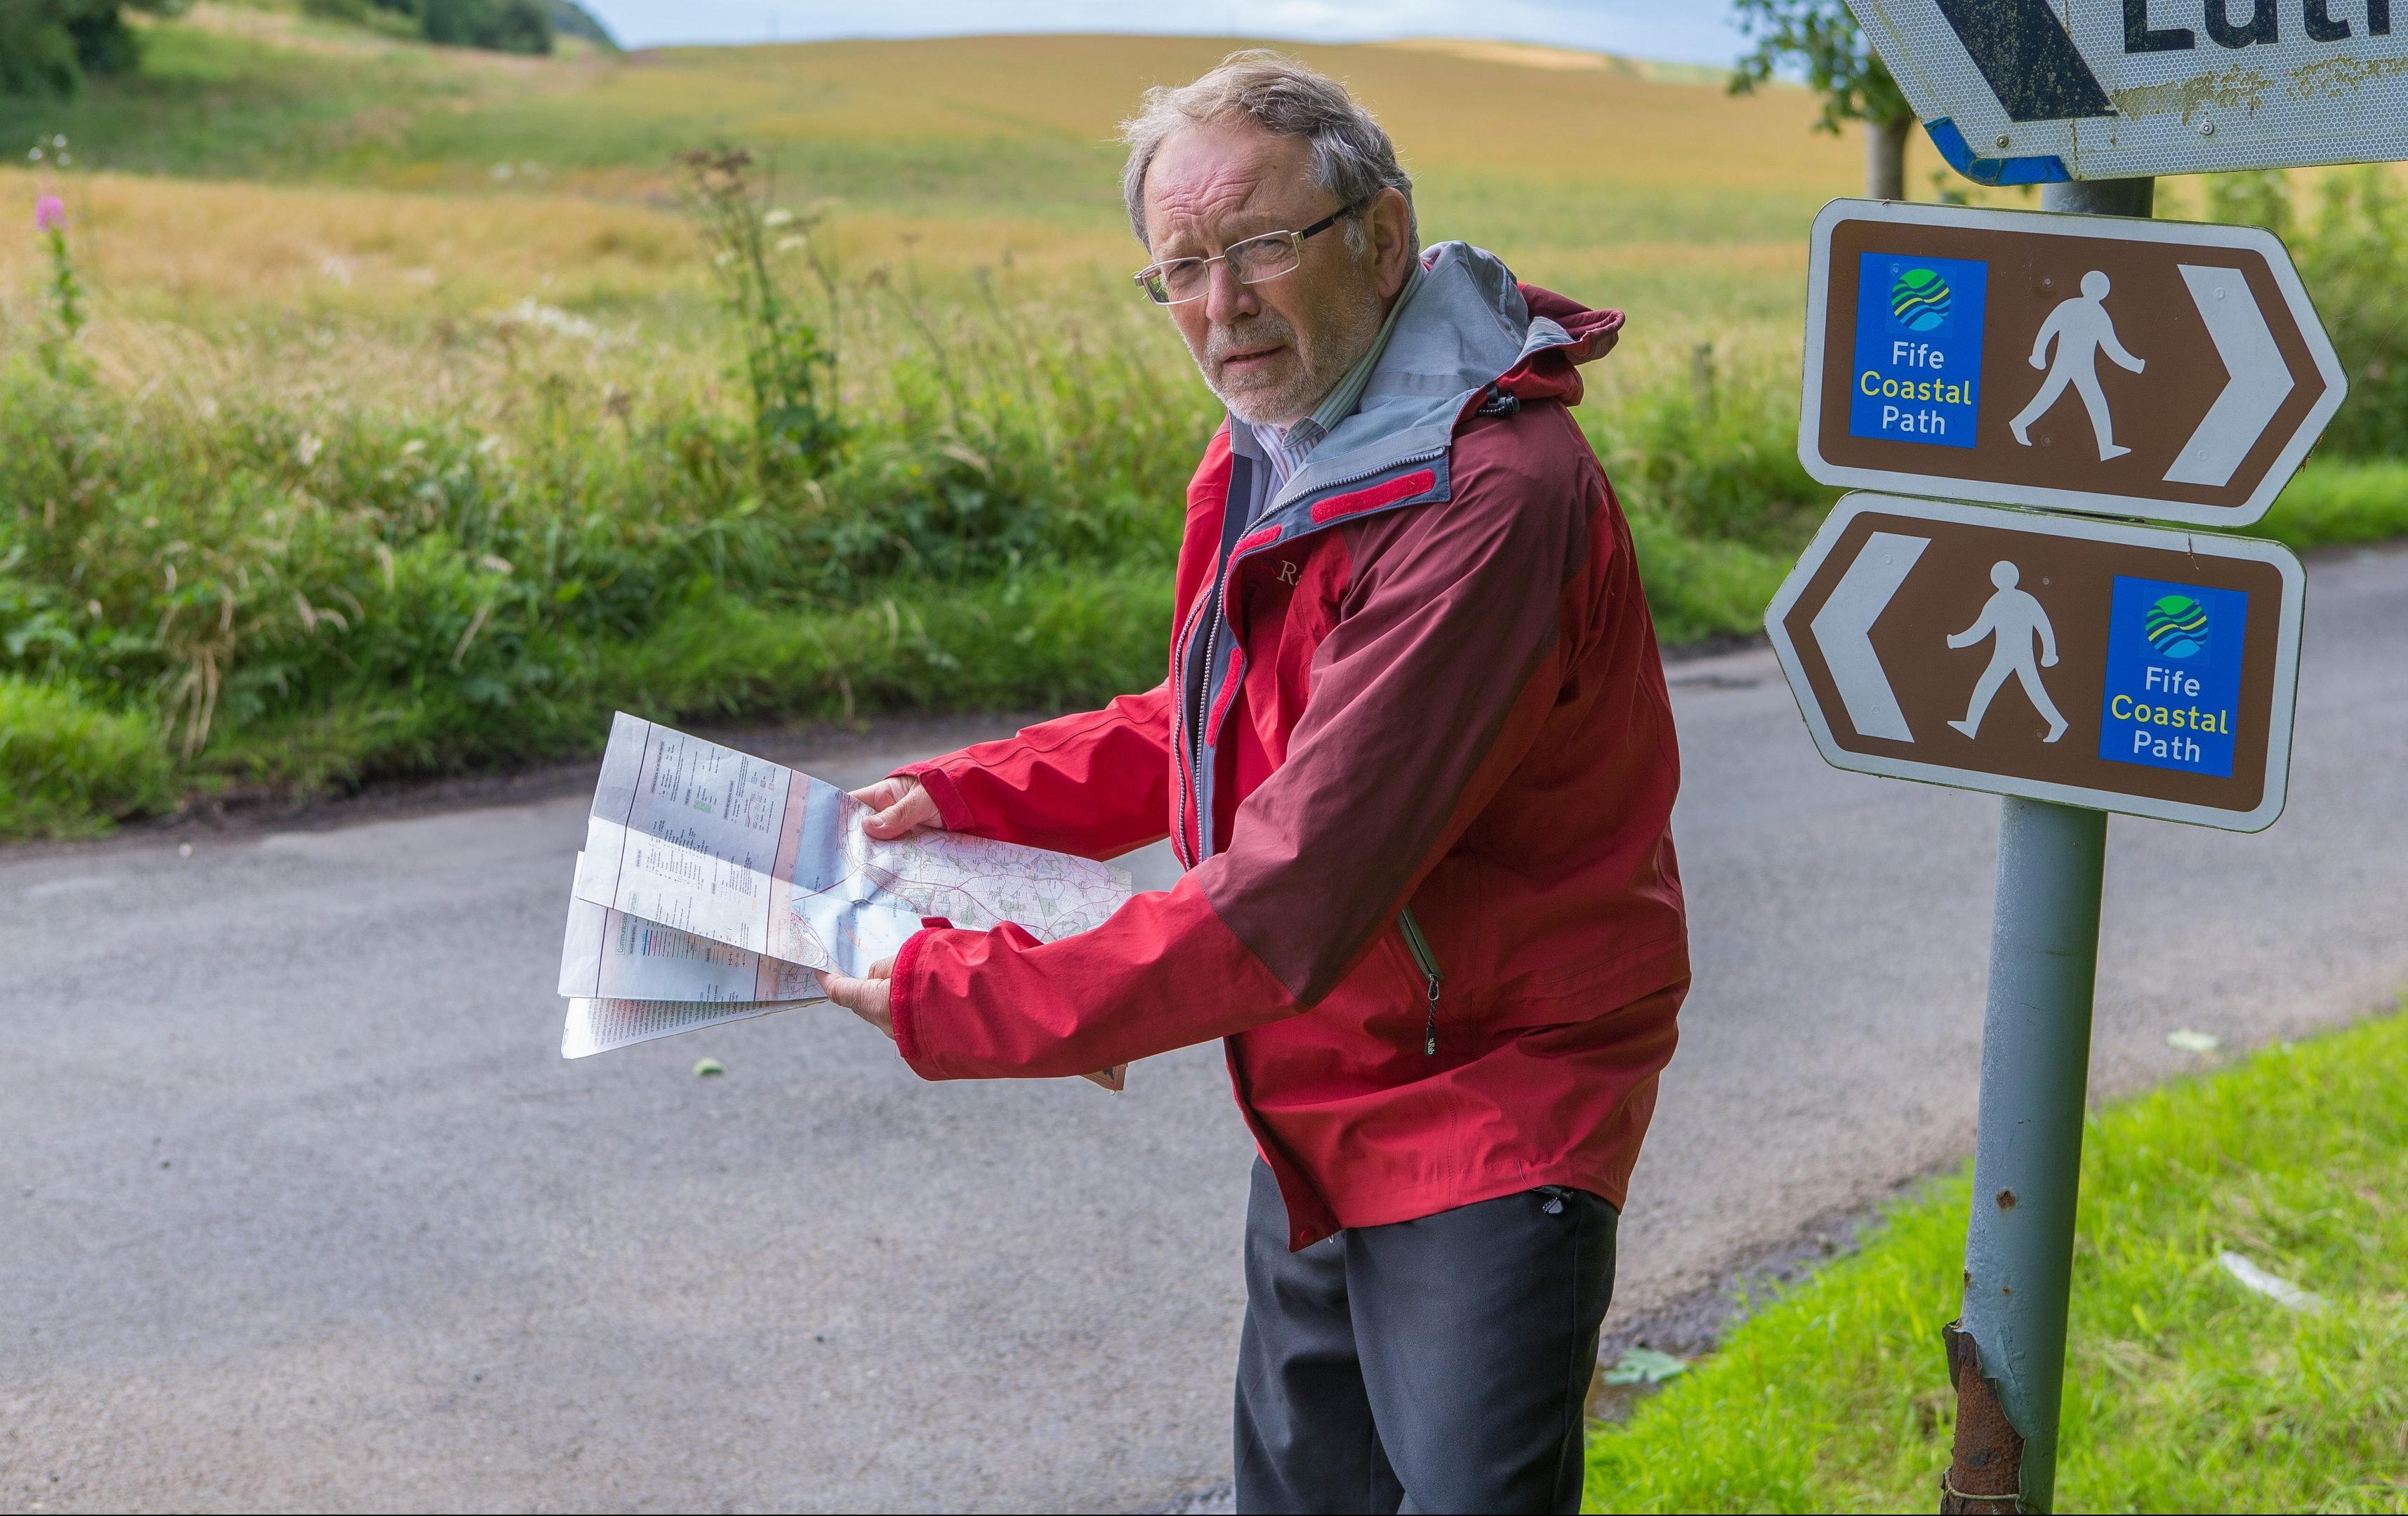 Councillor Tim Brett is calling upon Ordnance Survey to include the Core Path network on its range of maps in order for walkers, cyclists and all who enjoy the outdoors to be able to plot their course for their enjoyment of the countryside.